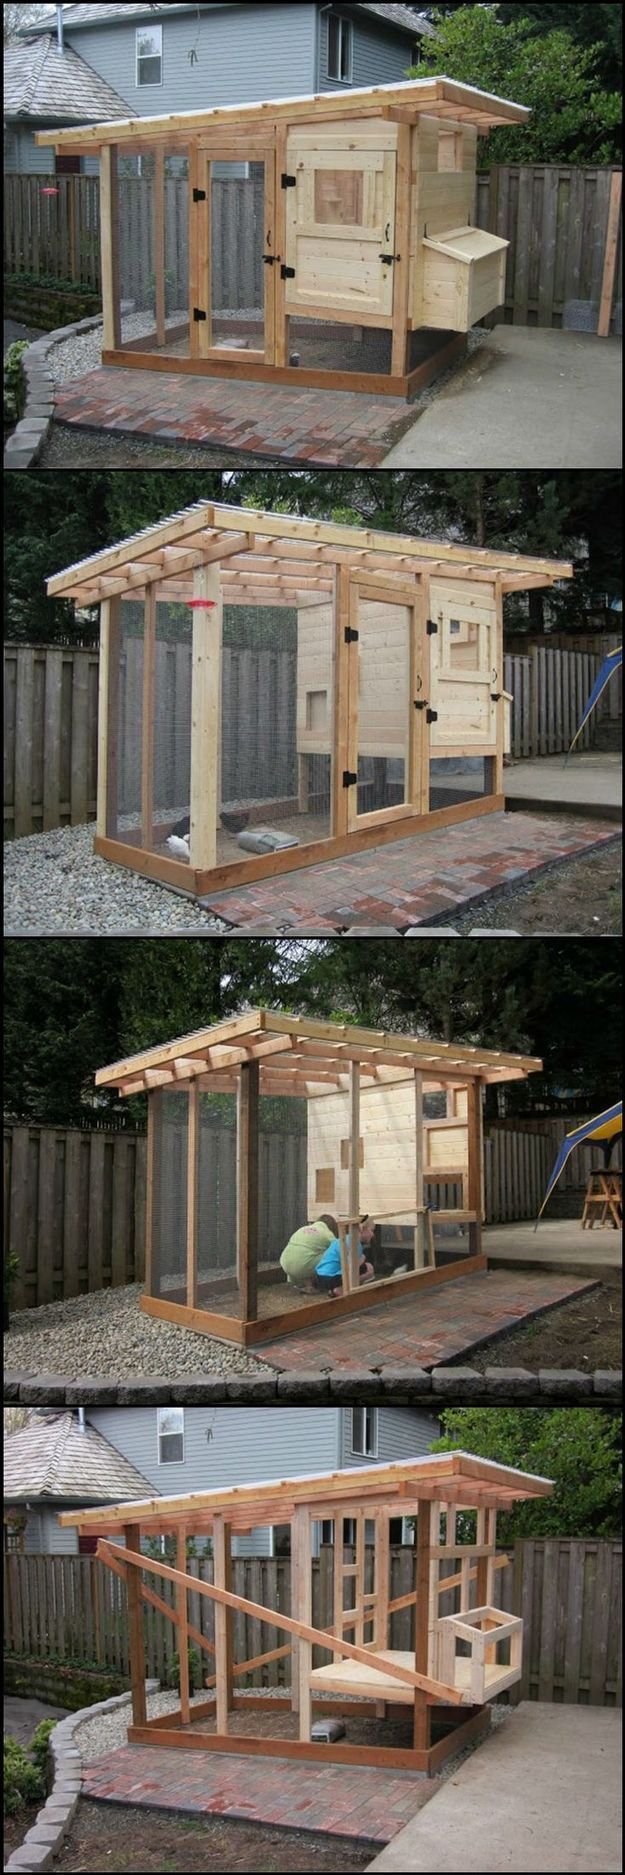 15 More Awesome Chicken Coop Designs And Ideas | Cool DIY Homesteading  Projects By Pioneer Settler